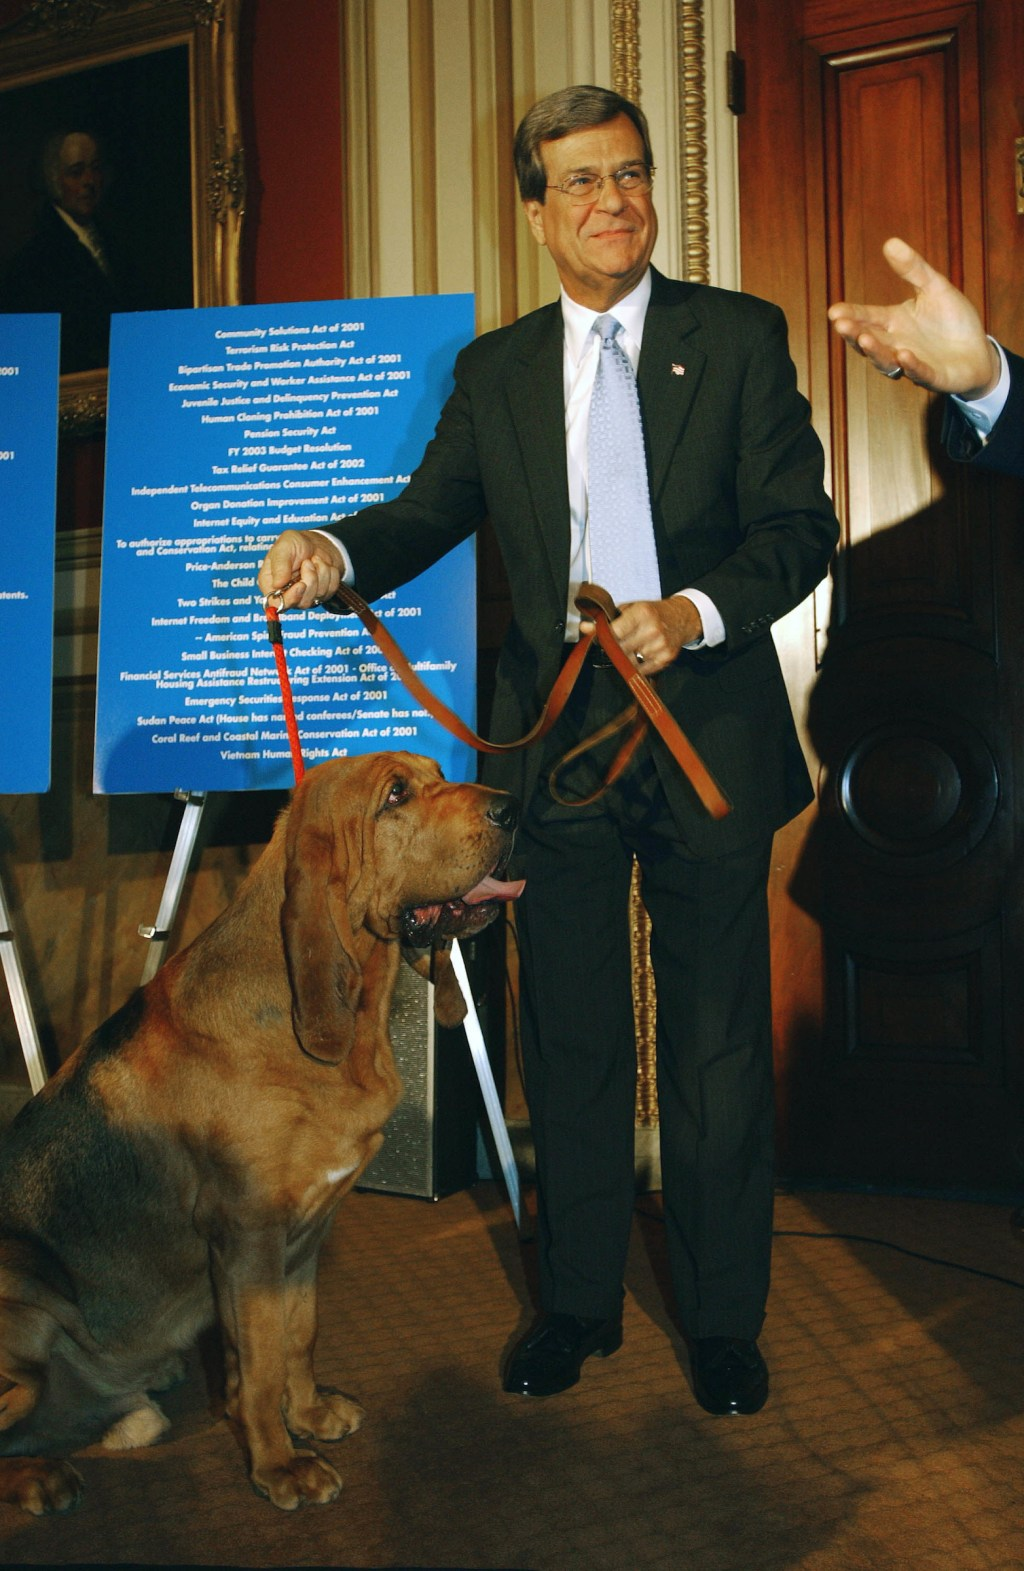 Senate Majority Leader Trent Lott, R-Miss., with bloodhounds at a news conference of GOP Senate leadership criticizing the Democratic leadership on its handling of the Senate agenda. As Lott and others entered the room with the dogs, they coaxed the dogs to